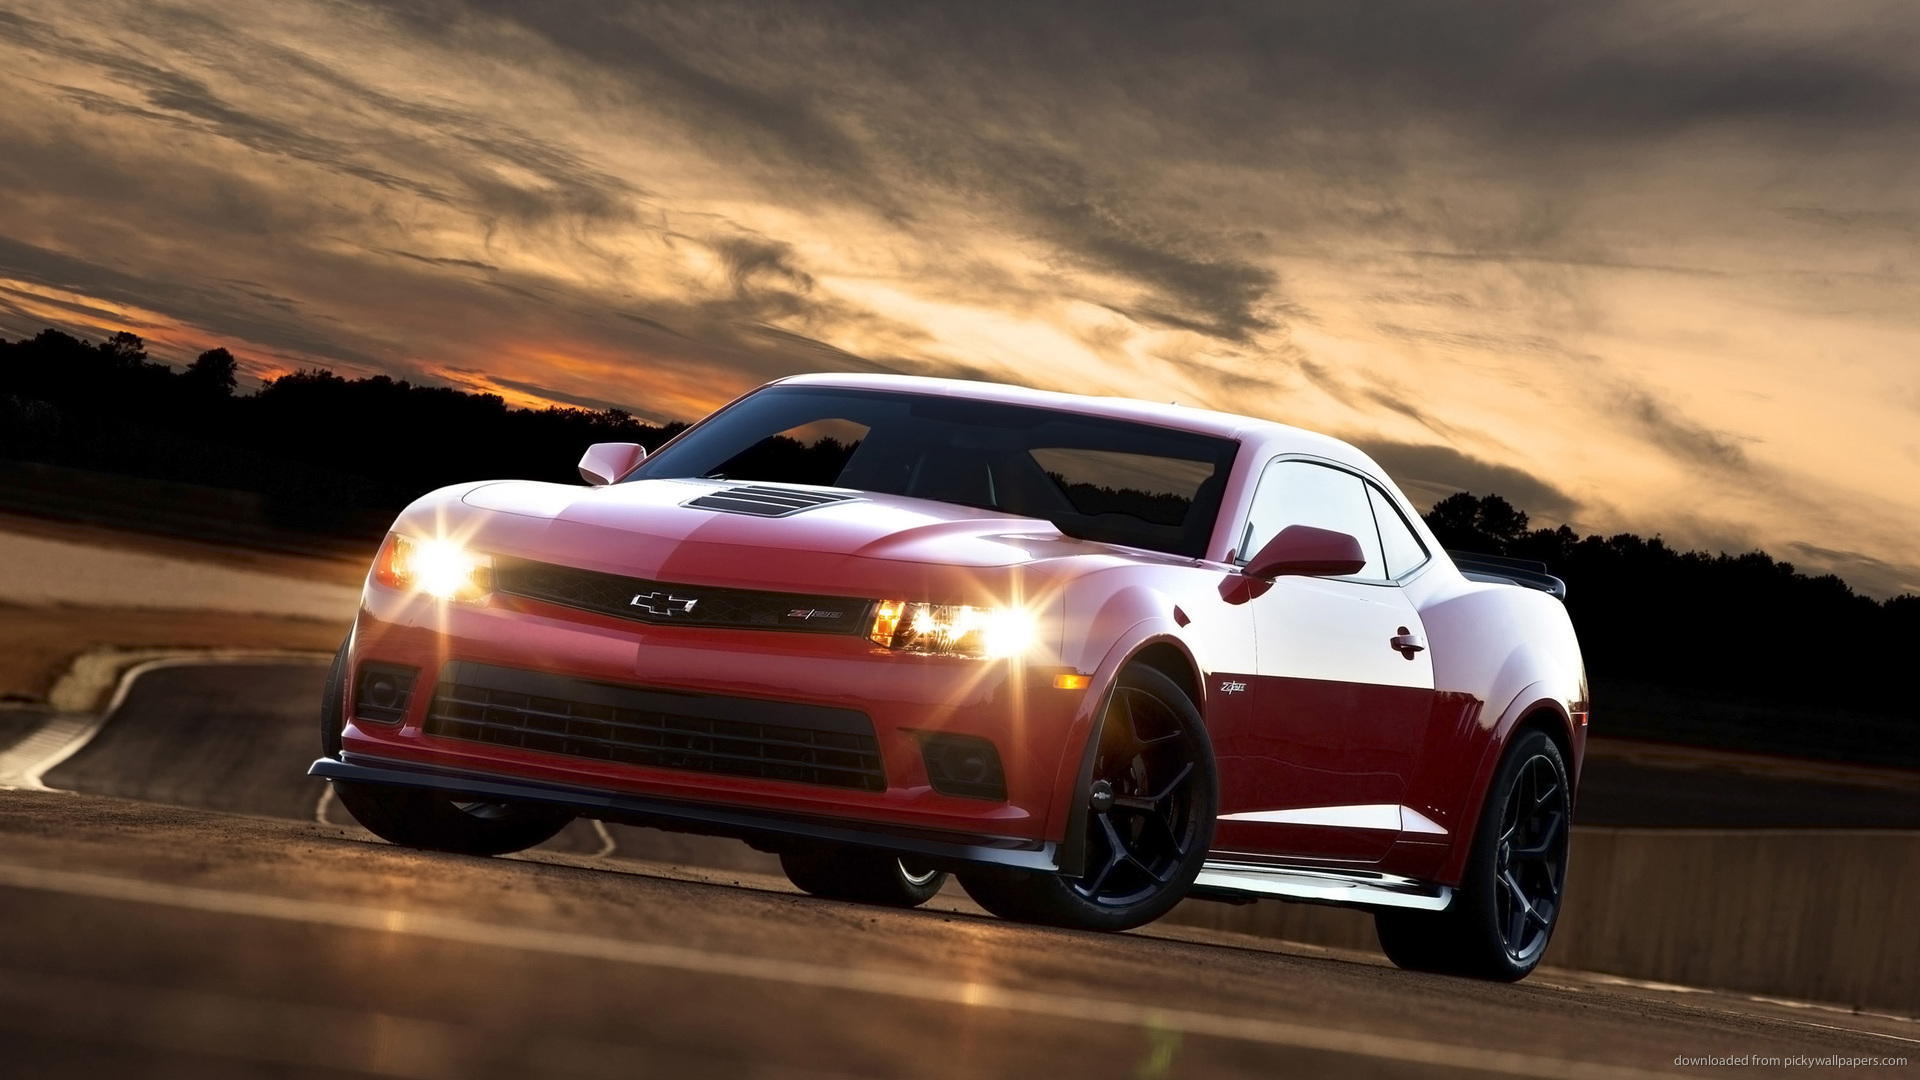 Red 2015 Chevrolet Camaro Wallpaper picture 1920x1080